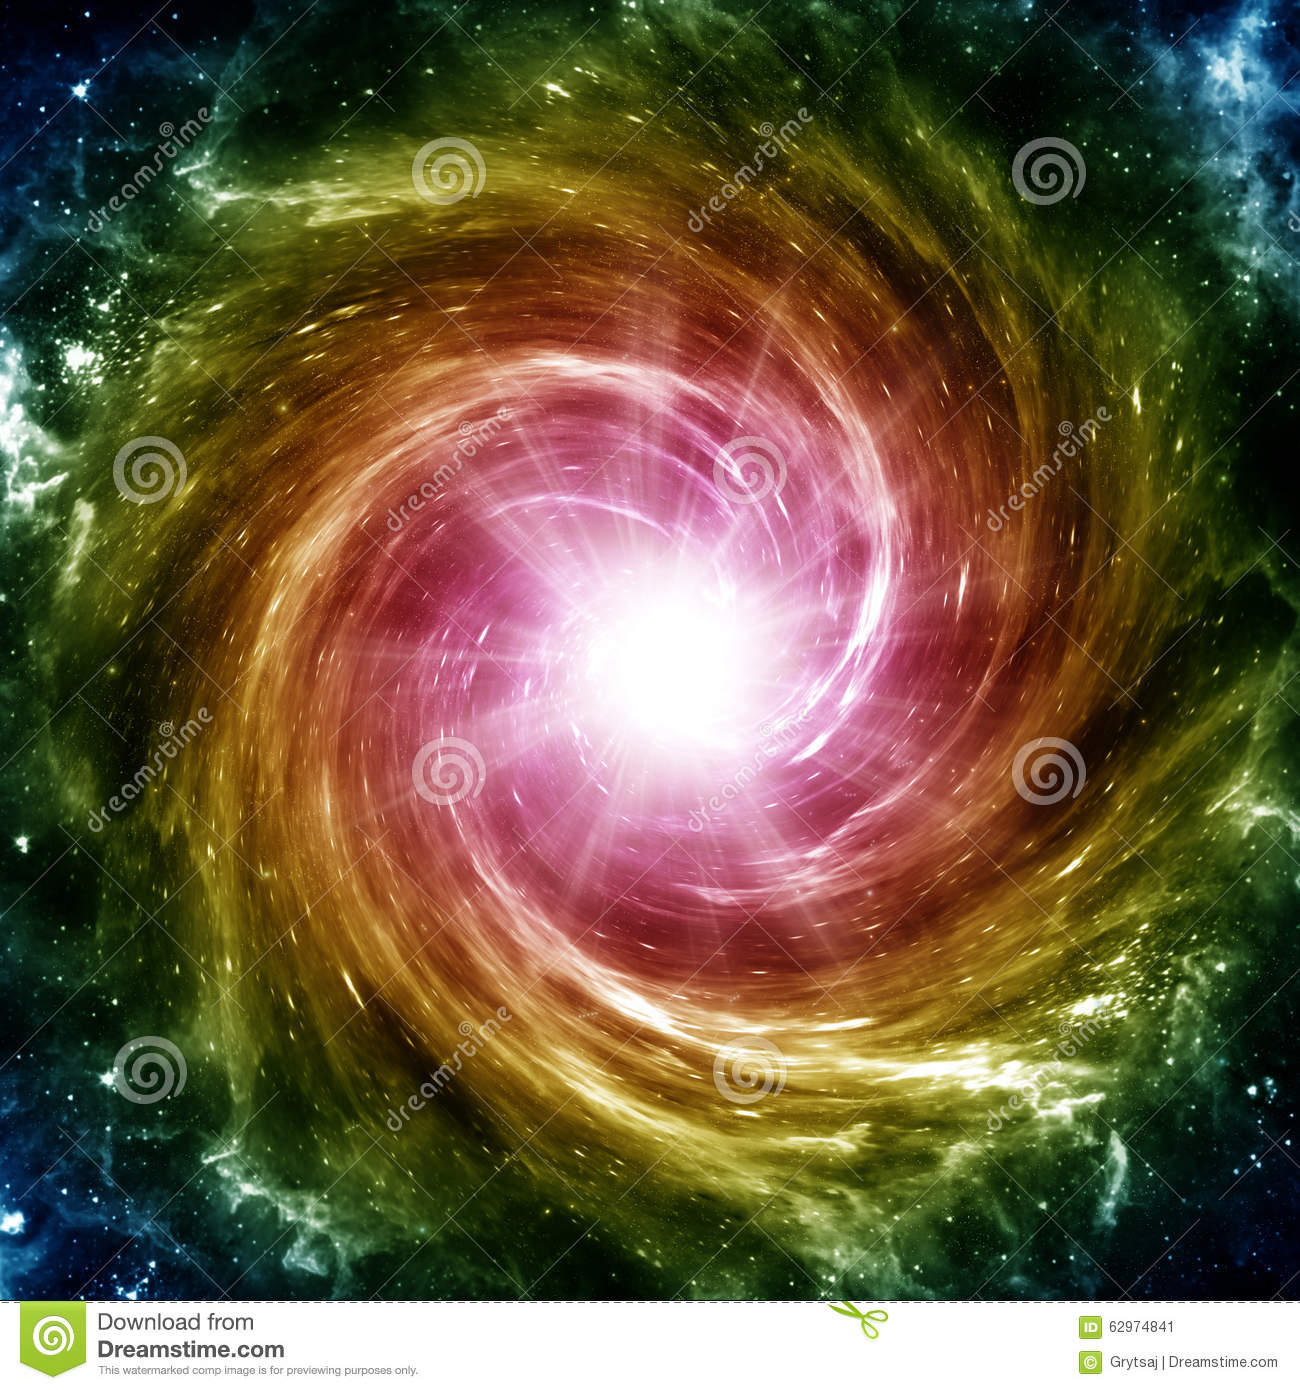 Colored spiral galaxy